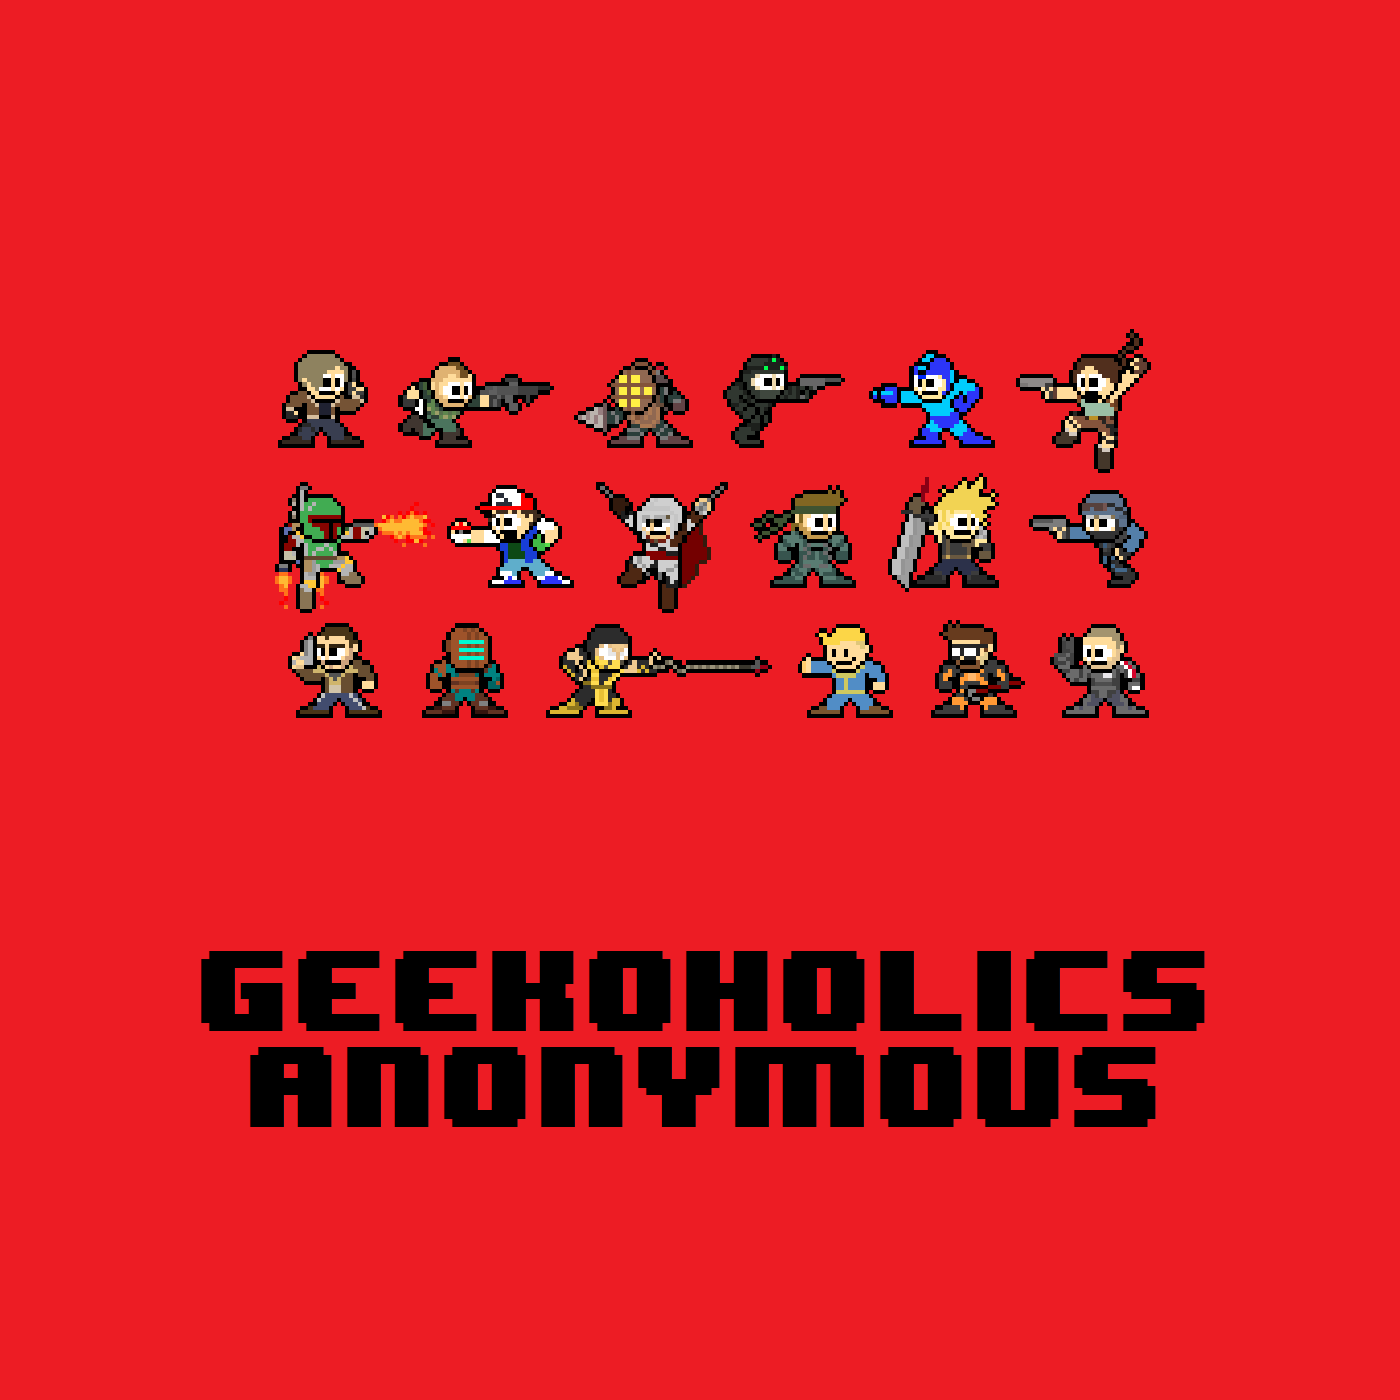 E3 2021, Ratchet & Clank, The Stranger of Paradise and more - Geekoholics Anonymous Podcast 310 show art